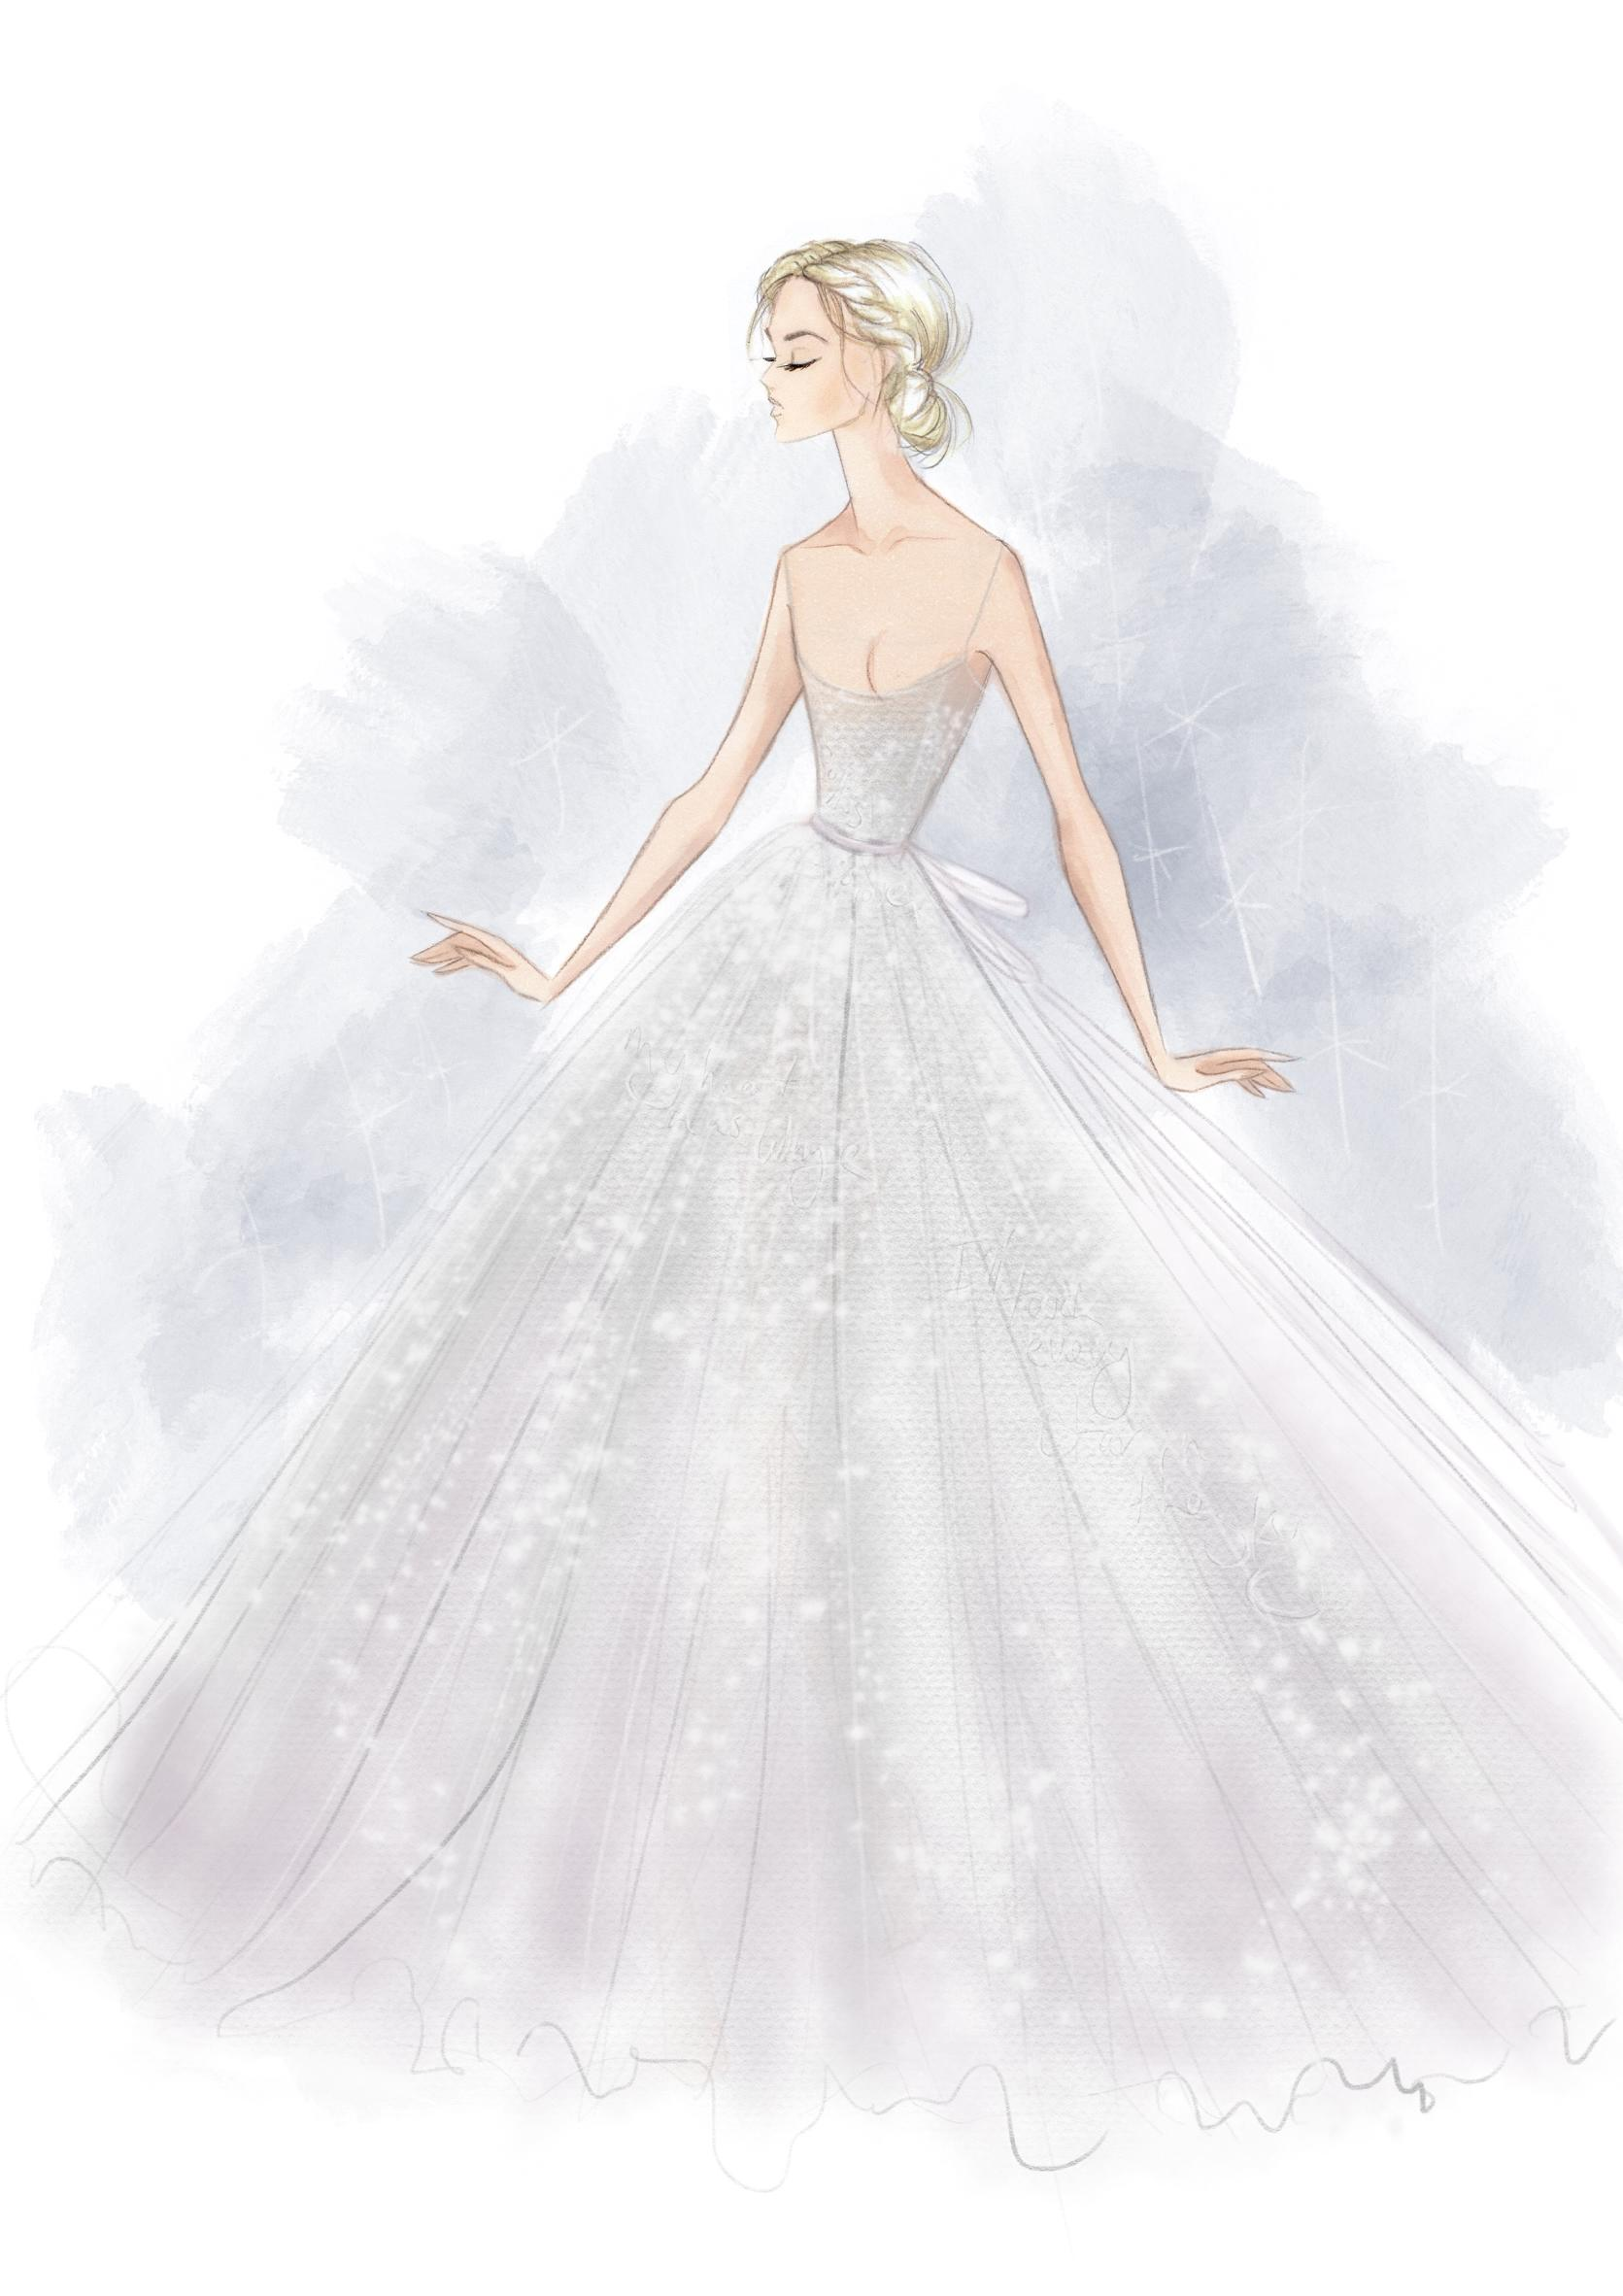 What Does This Mean To You And The Paolo Sebastian Brand Have Disney Entrust Me With Telling Their Stories Through Couture Is An Absolute Dream